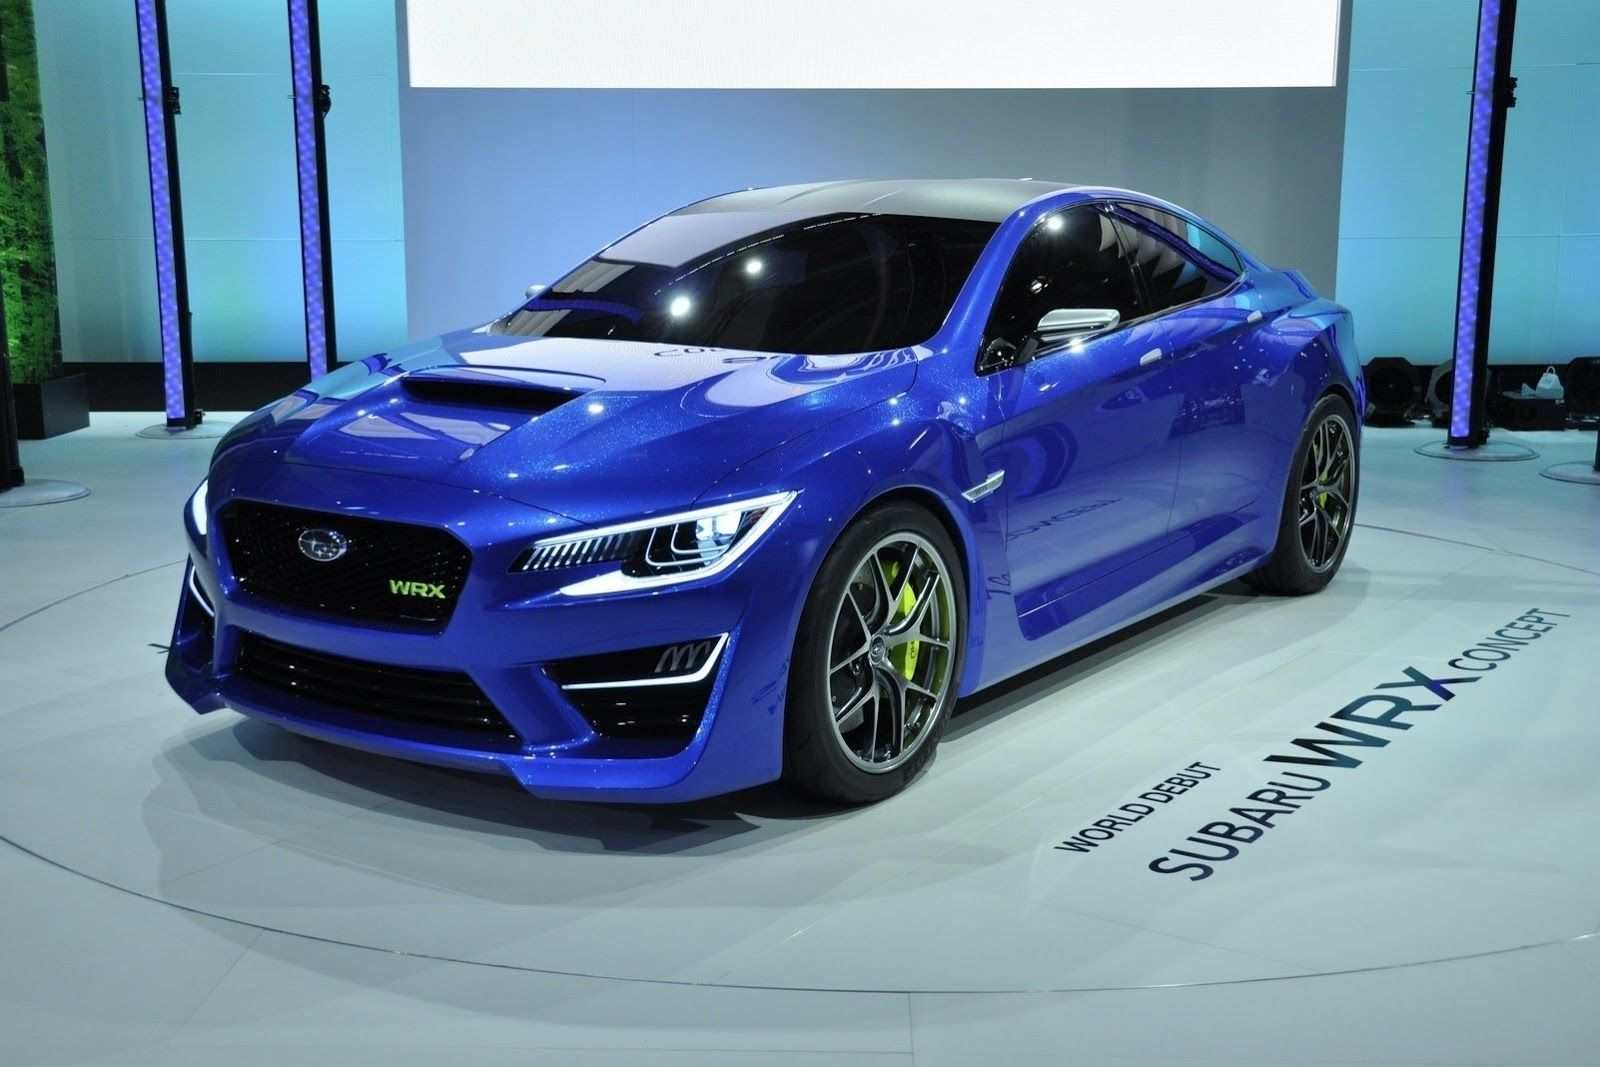 61 New 2019 Subaru Brz Sti Price Configurations with 2019 Subaru Brz Sti Price